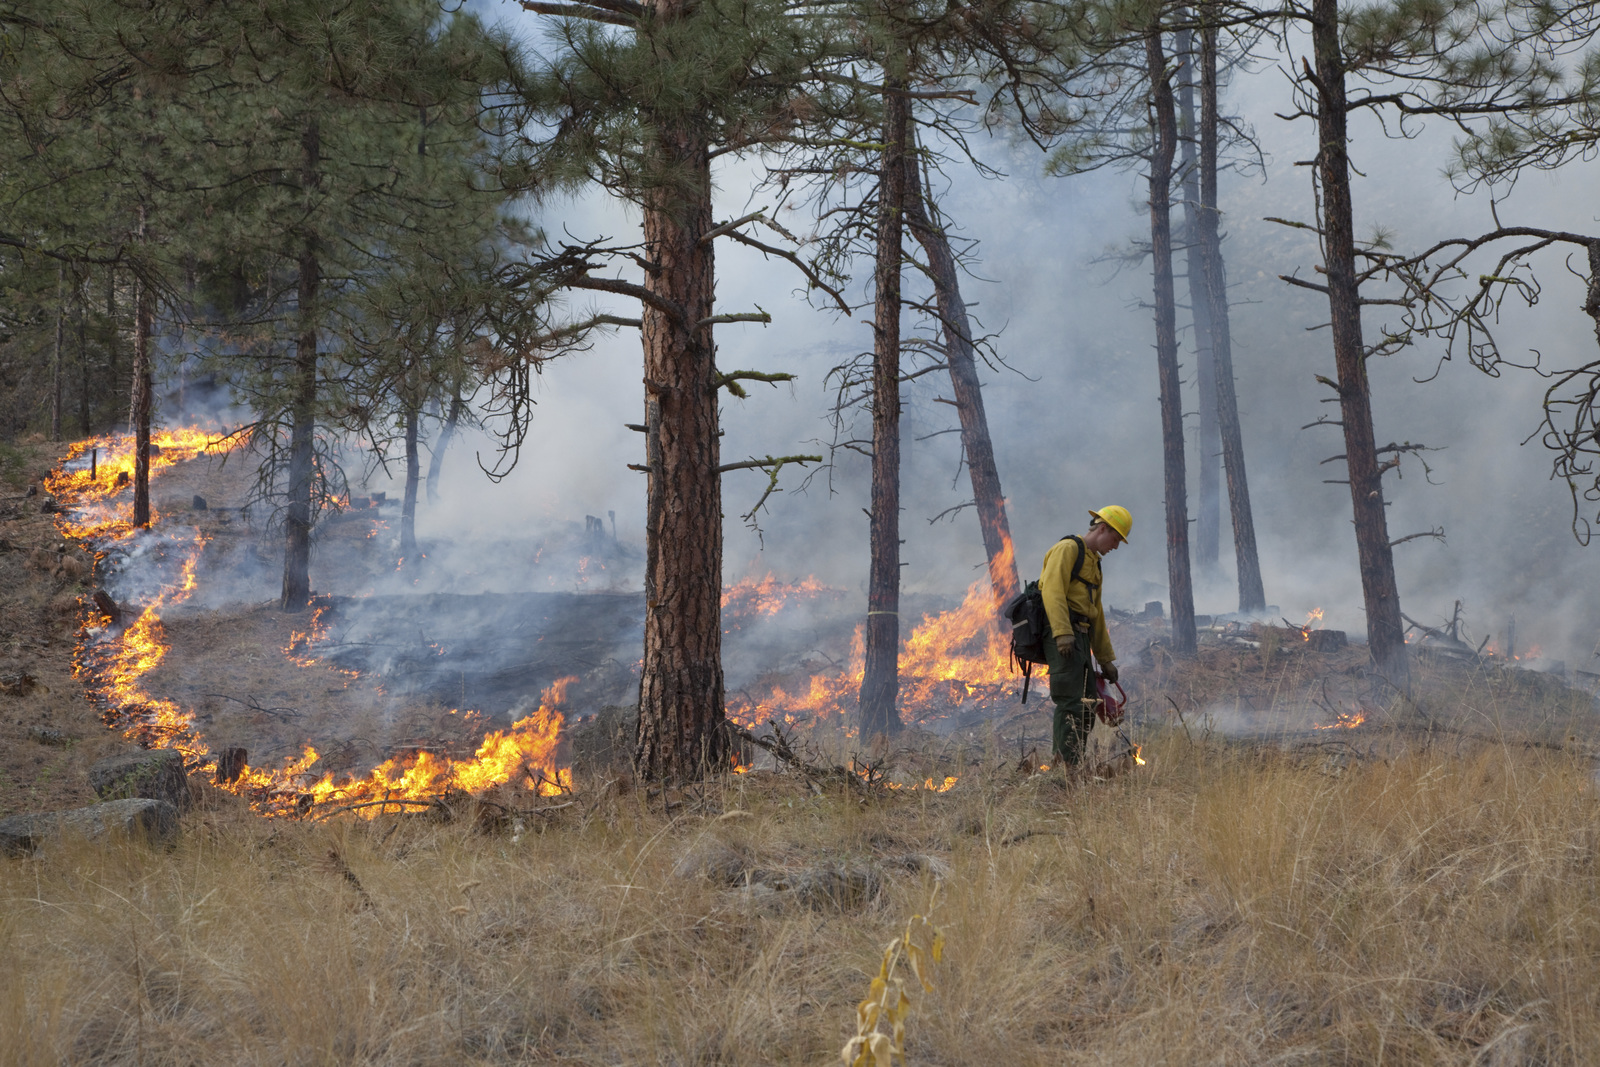 Prescribed fire in ponderosa pine forest in fall on Sinlahekin Wildlife Area in Okanogan County. These lower-intensity fires create healthy forests as well as create conditions where fire crews can more safely and effectively manage wildfire Photo © John Marshall.